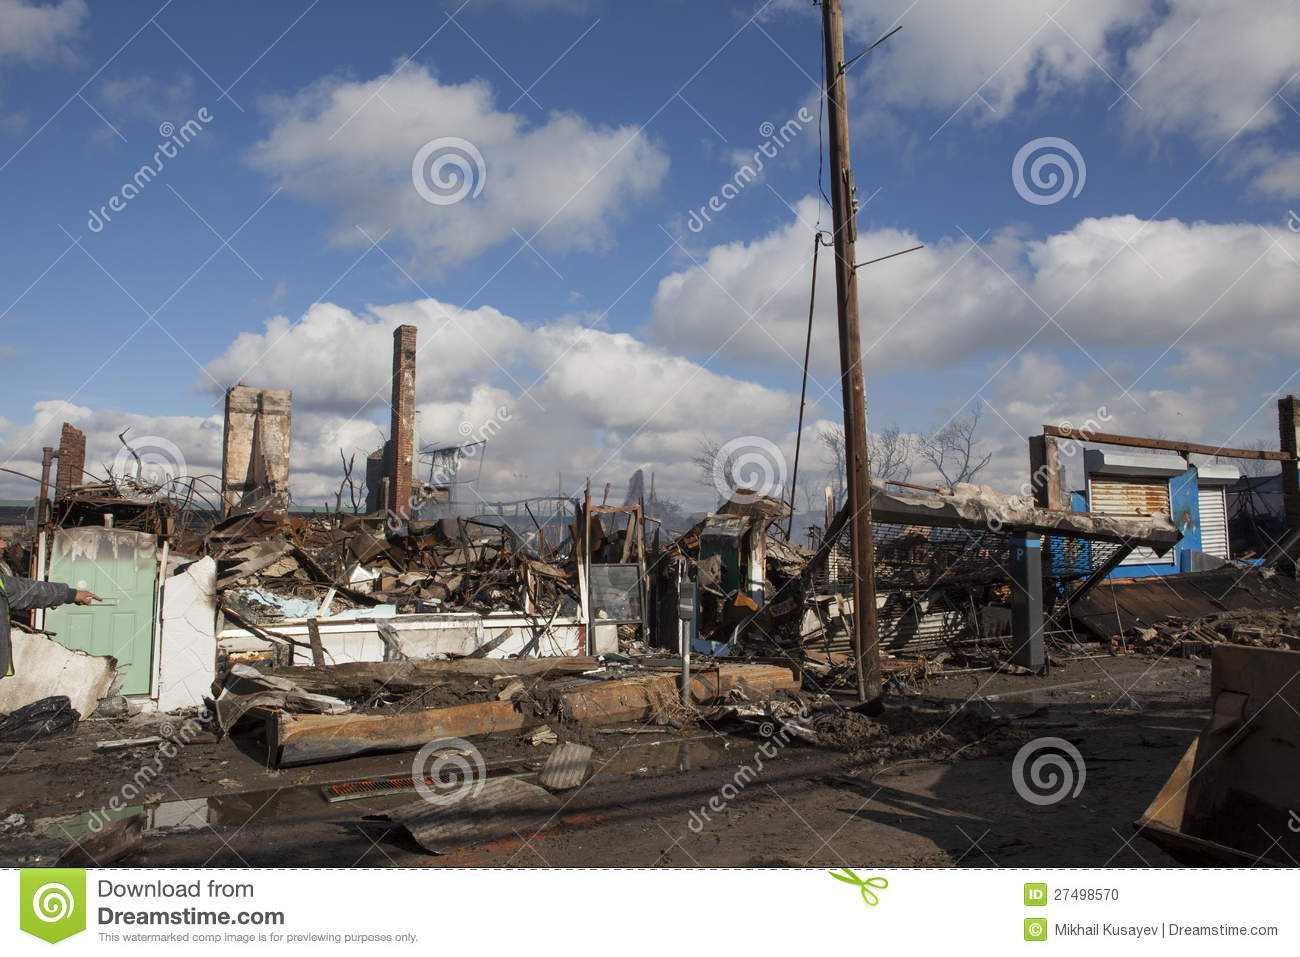 Homes sit smoldering after Hurricane